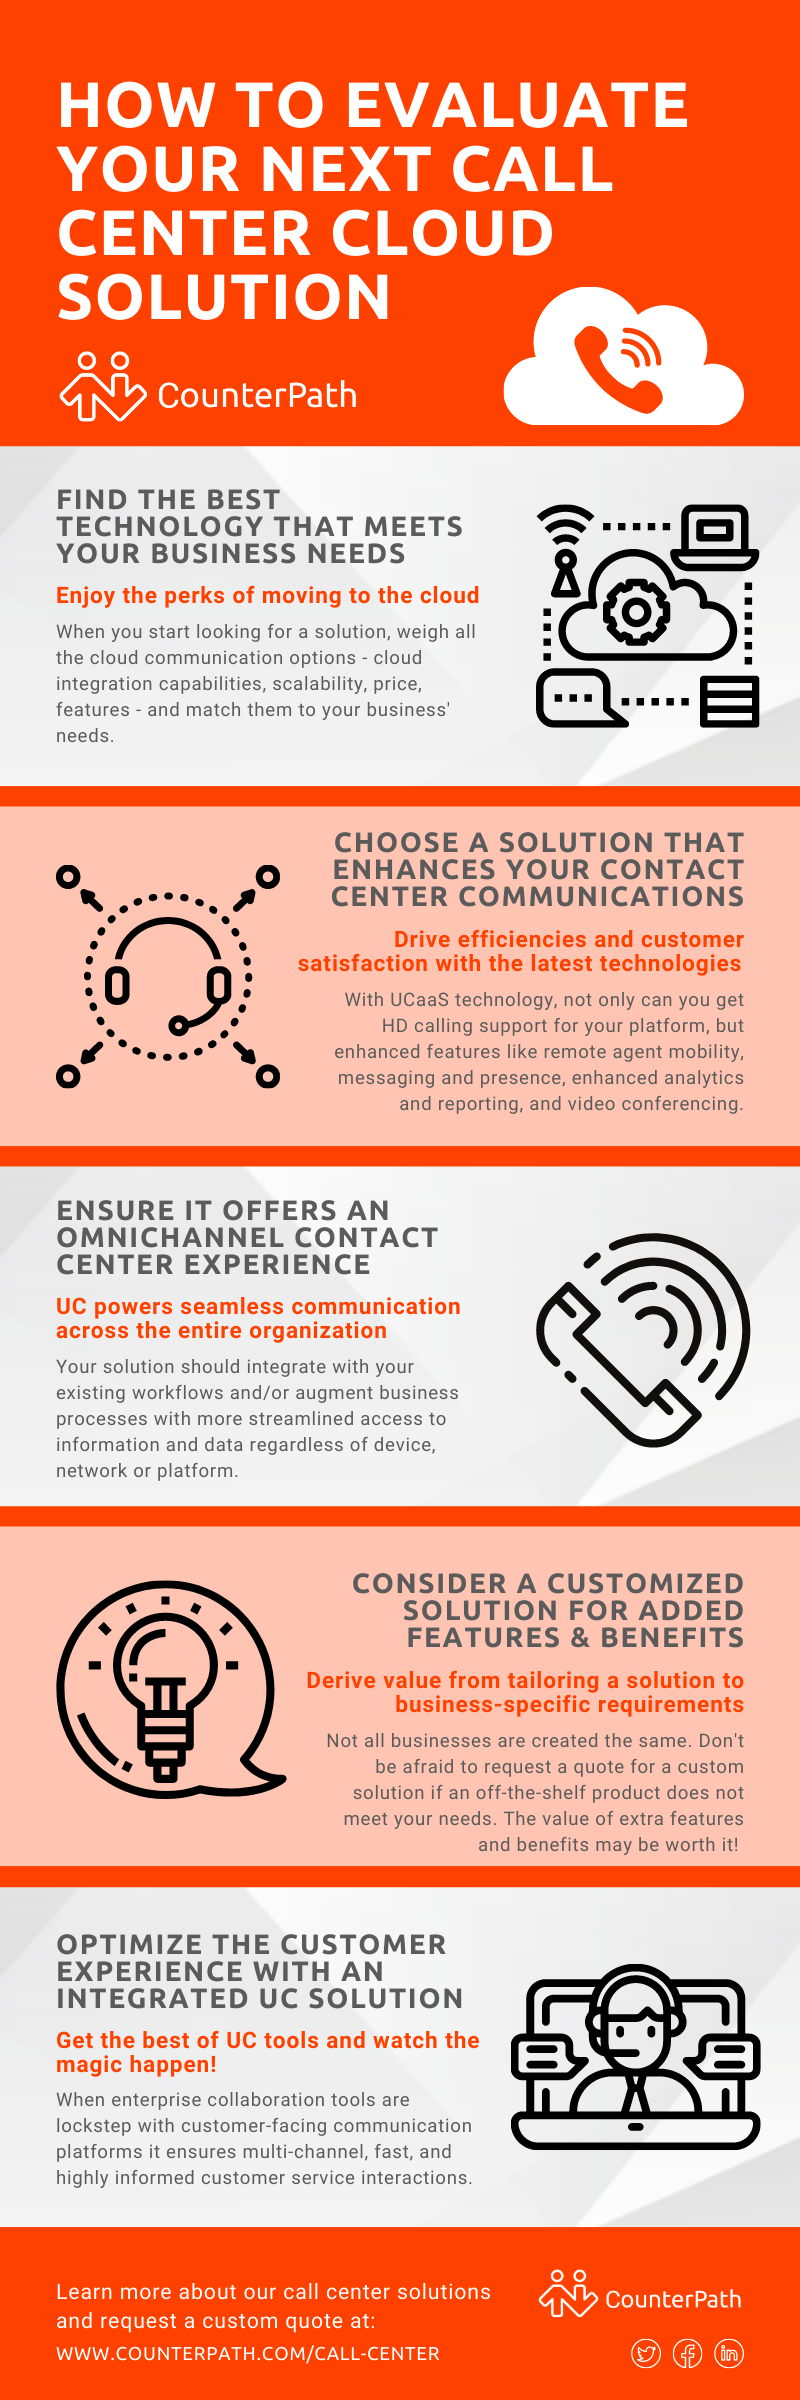 Leverage the benefits of UC by integrating all your customer communications across channels.